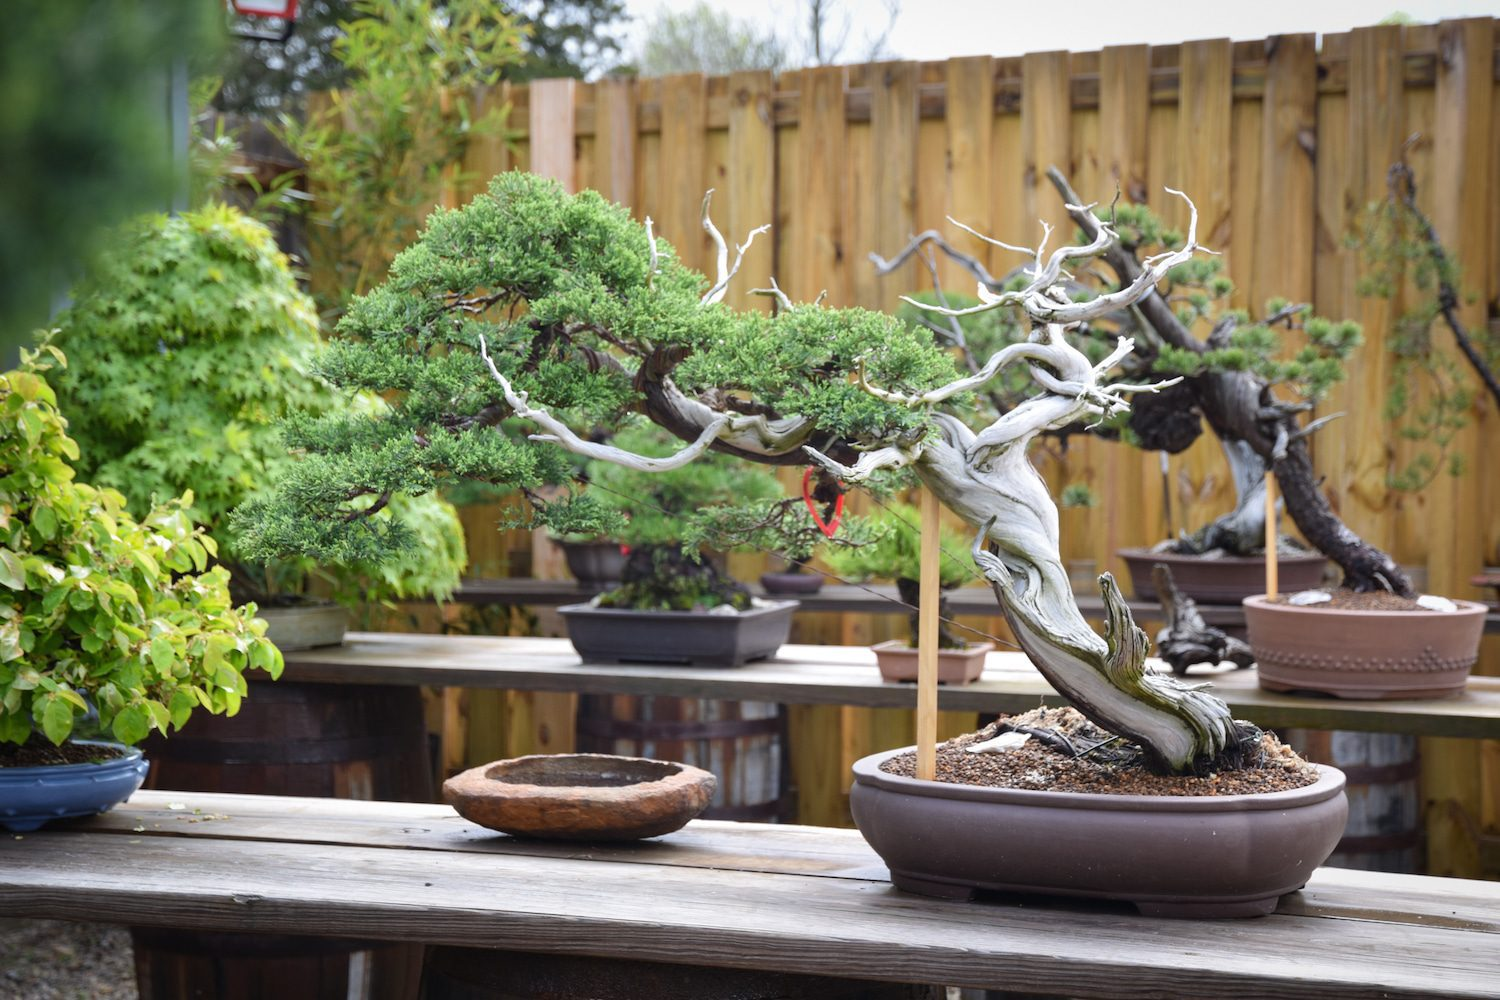 Rocky Mountain Juniper collected in Wyoming, approximately 200 years old